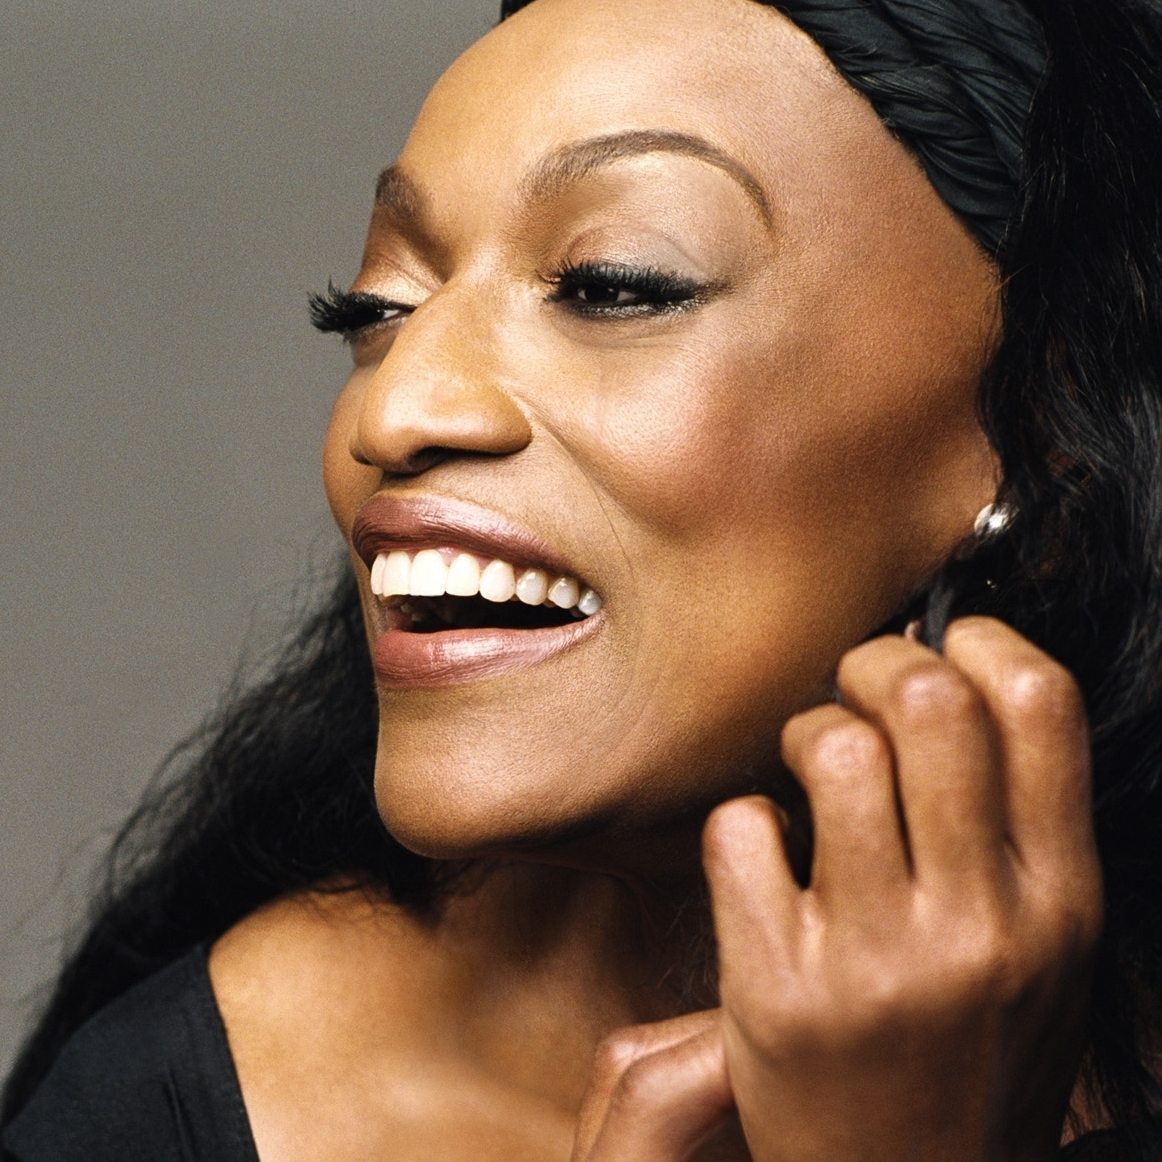 In a conversation aired on WBGO, Jessye Norman credits the study of jazz with her understanding of song interpretation.